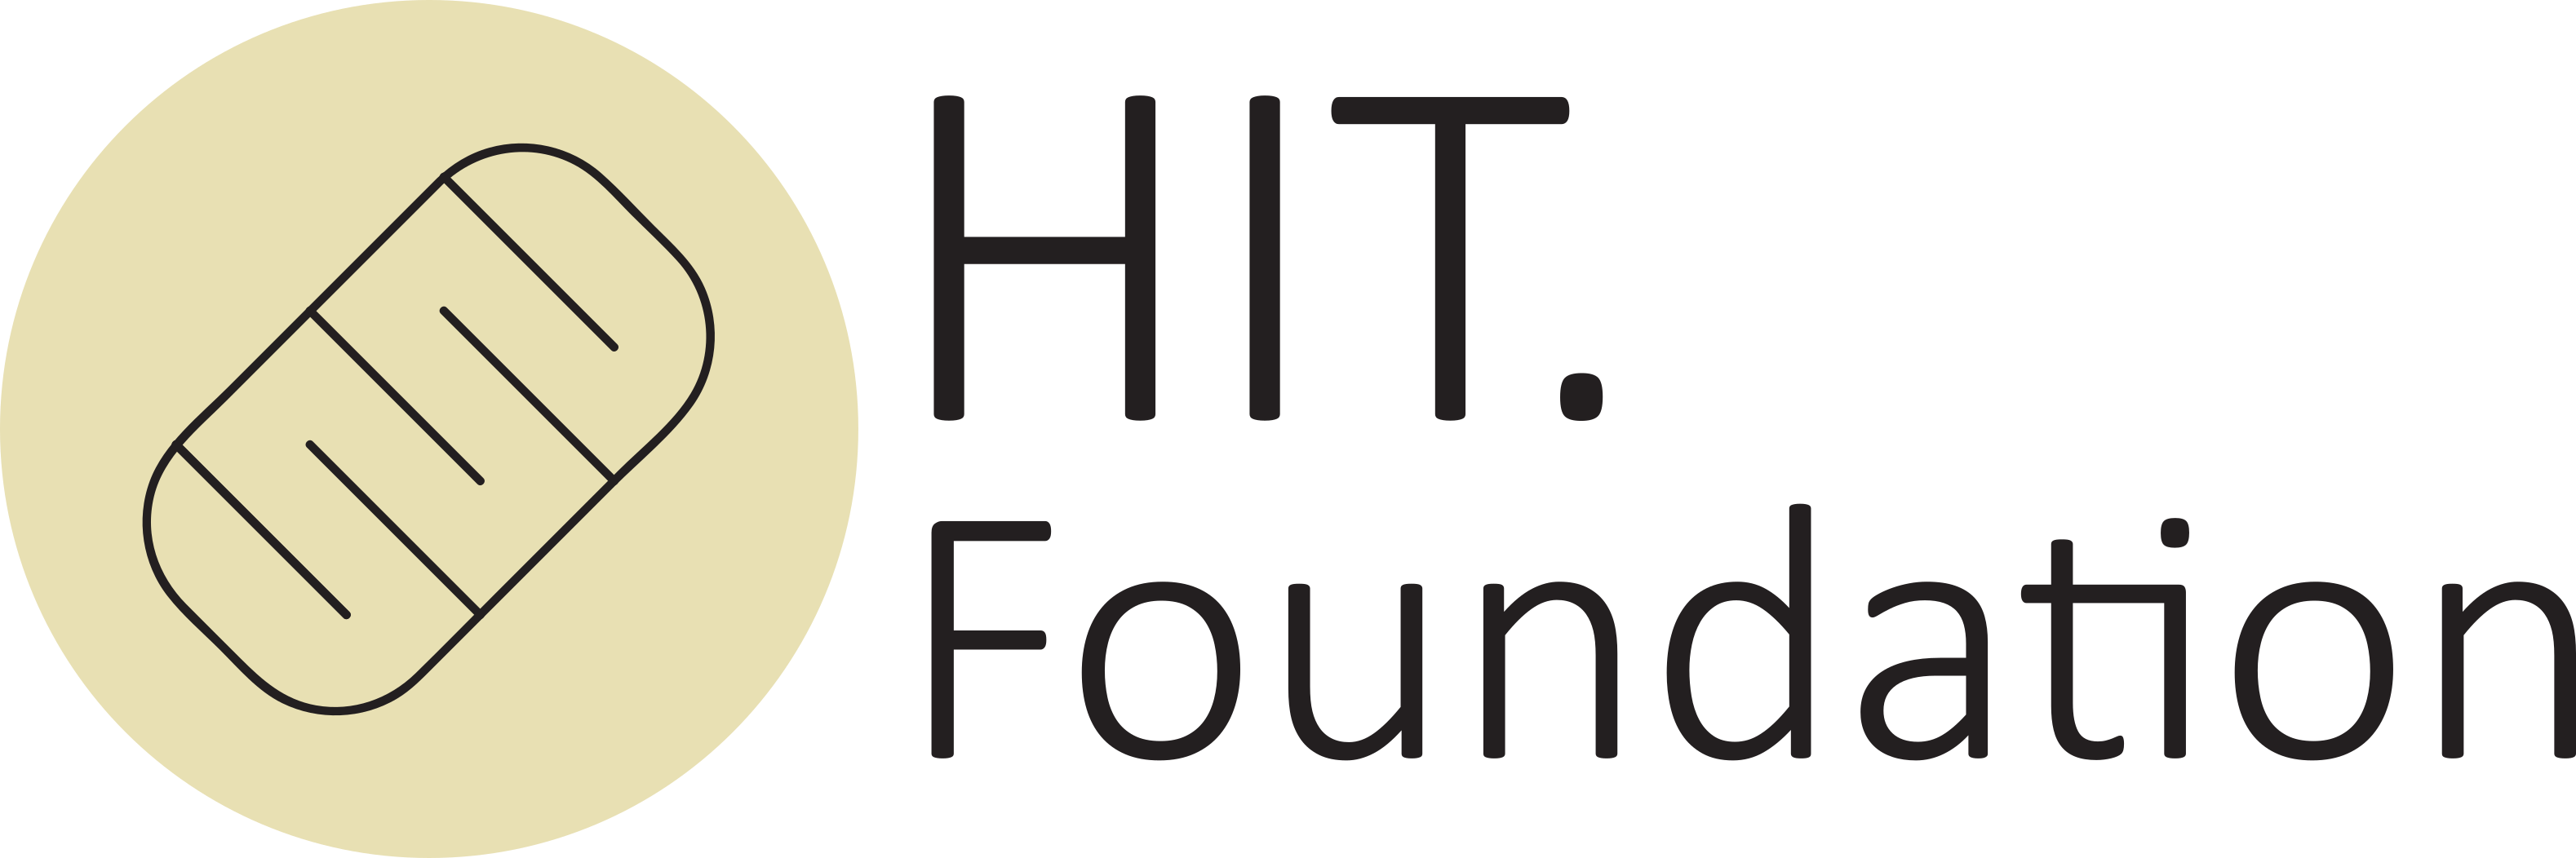 HIT. Foundation